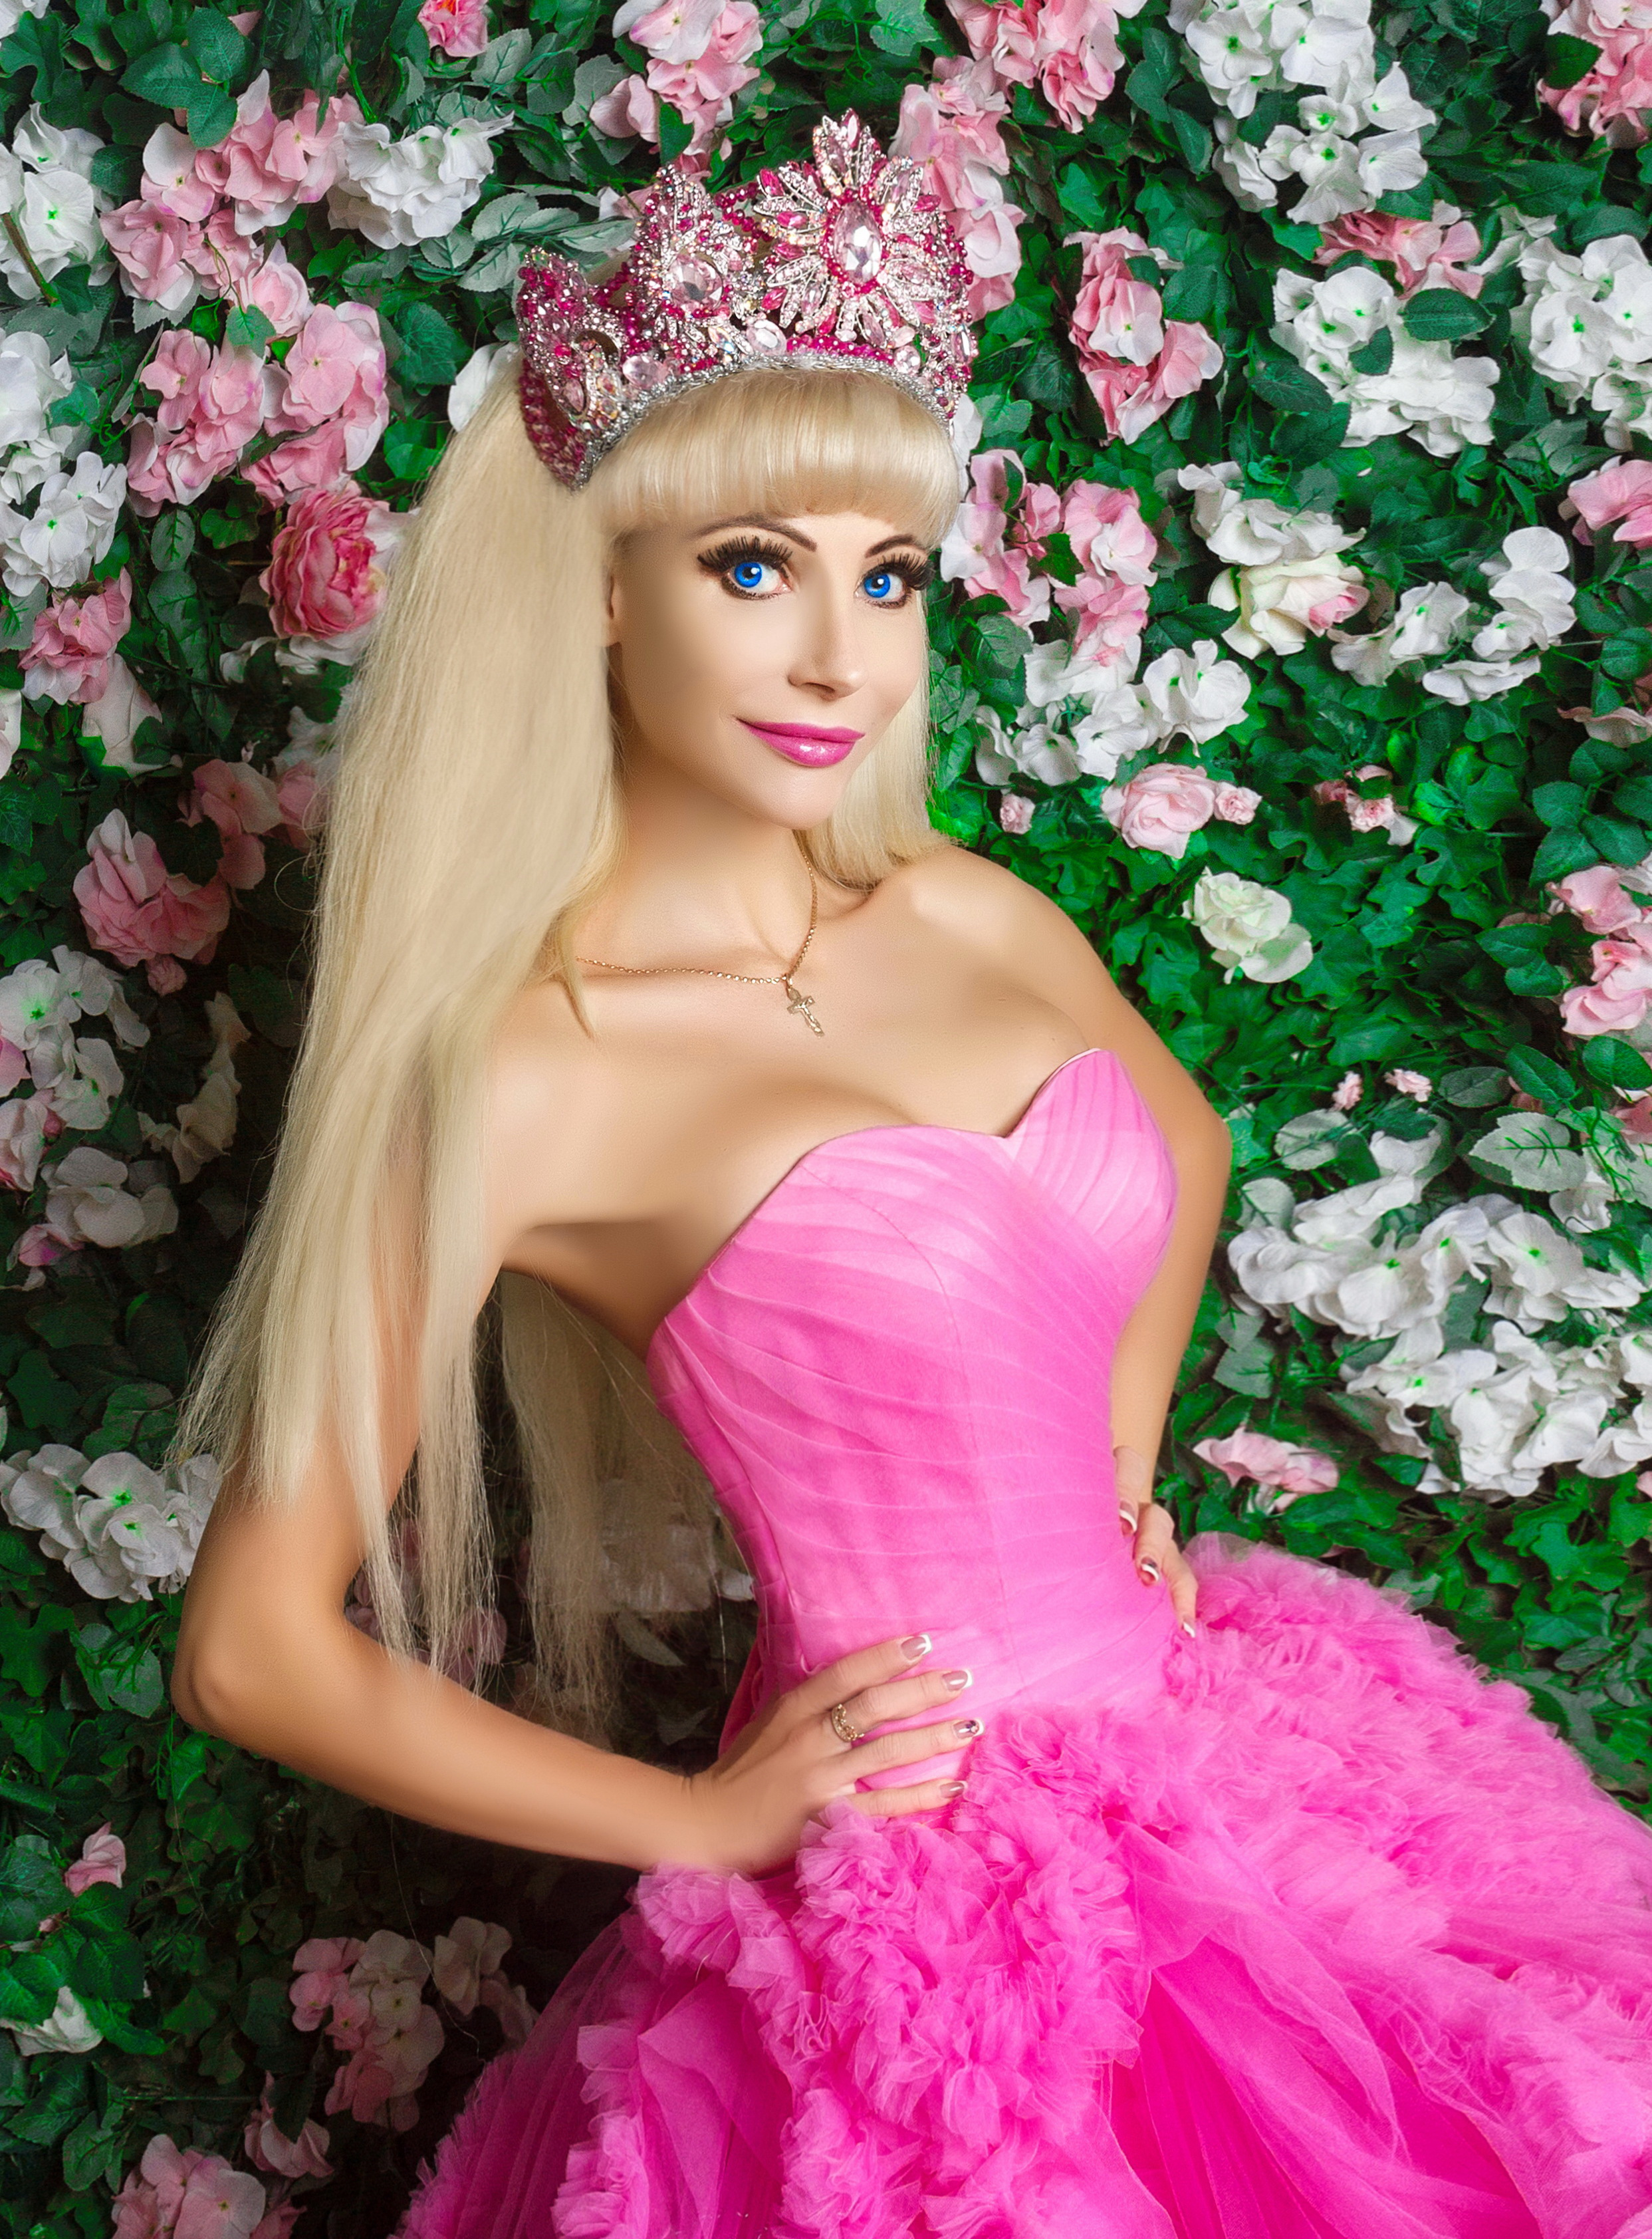 Barbie Girls Wallpapers High Quality | Download Free